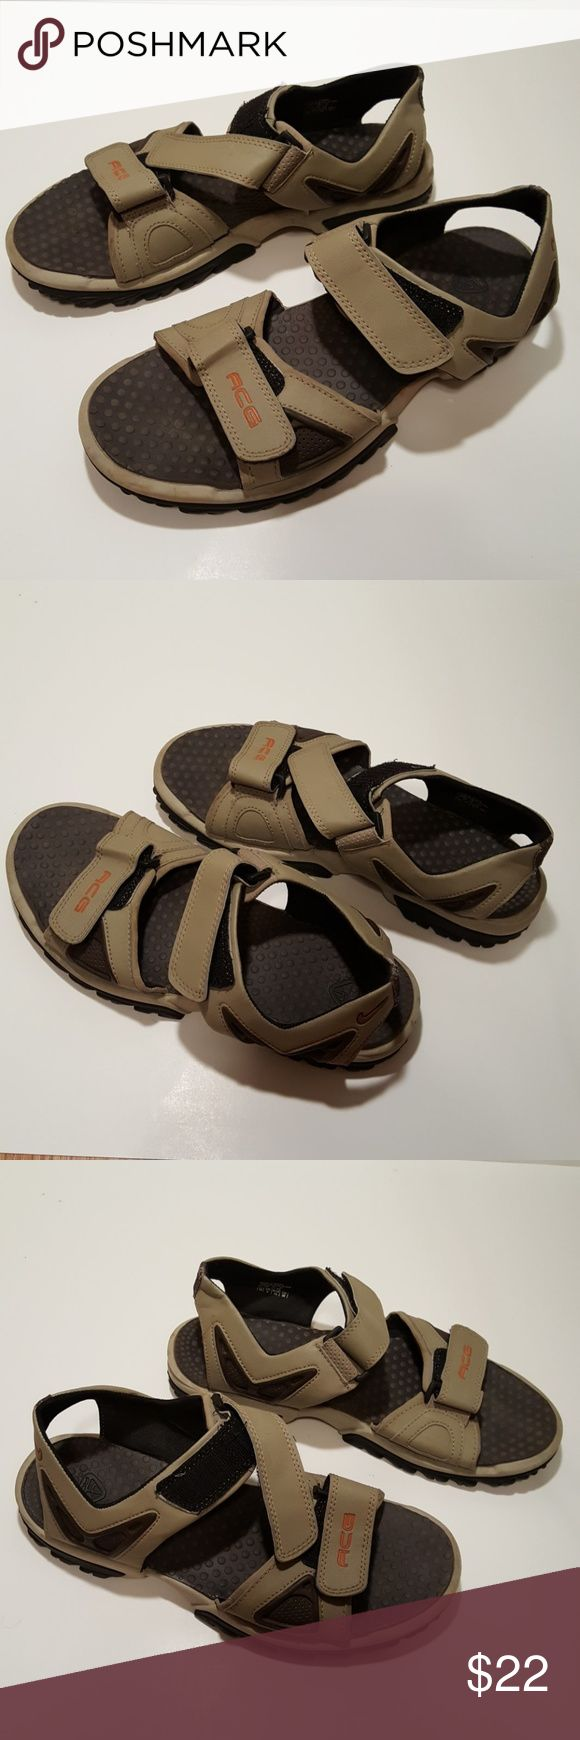 Nike ACG Mens Sandals Men's ACG sandals in good condition. Sandals show average signs of wear. Overall condition is great. Lightweight and ready for the outdoors. Nike ACG Shoes Sandals & Flip-Flops